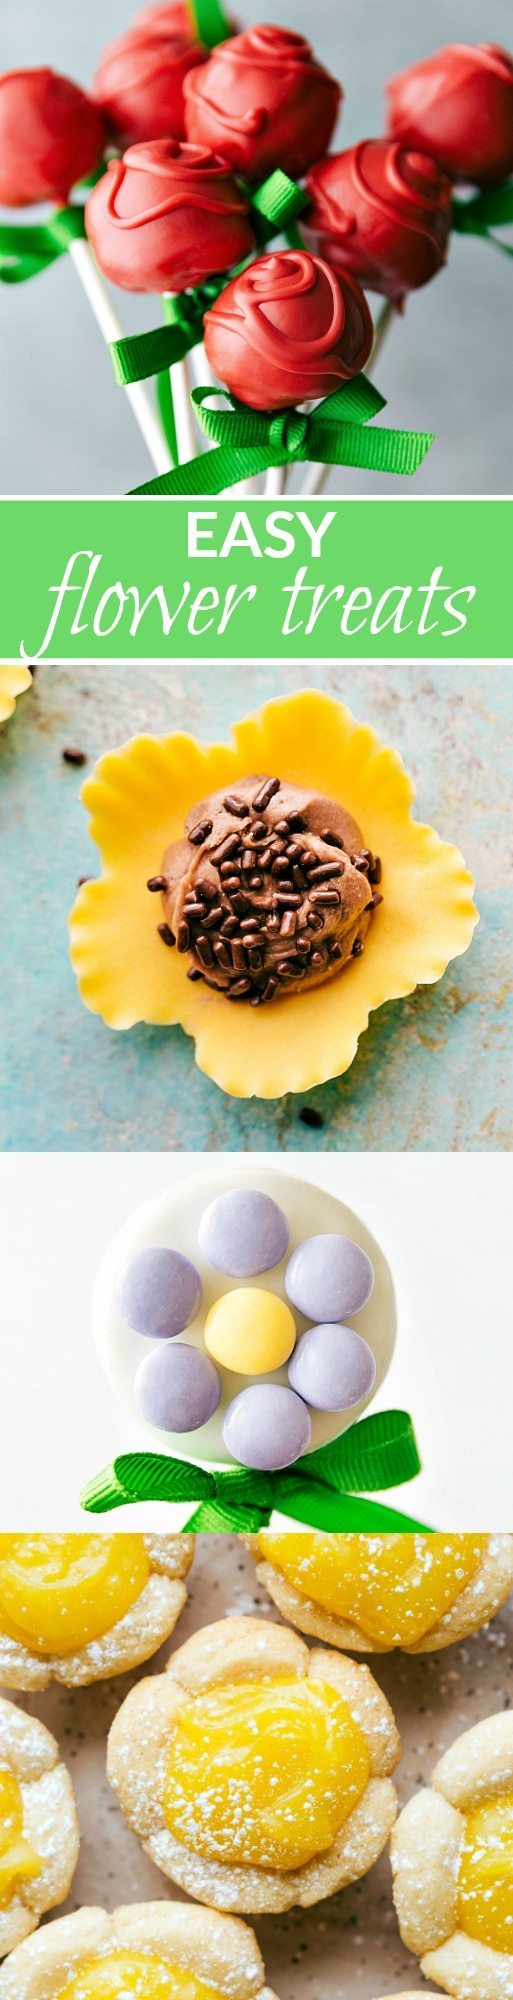 """""""Four simple themed flower treats that are perfect for Mother's Day or Spring celebrations! Rose Cake Pops, Lemon Curd Cookie Cups, Flower Cookie Pops, & Sunflower Nutella Frosting Bites. via chelseasmessyapron.com"""